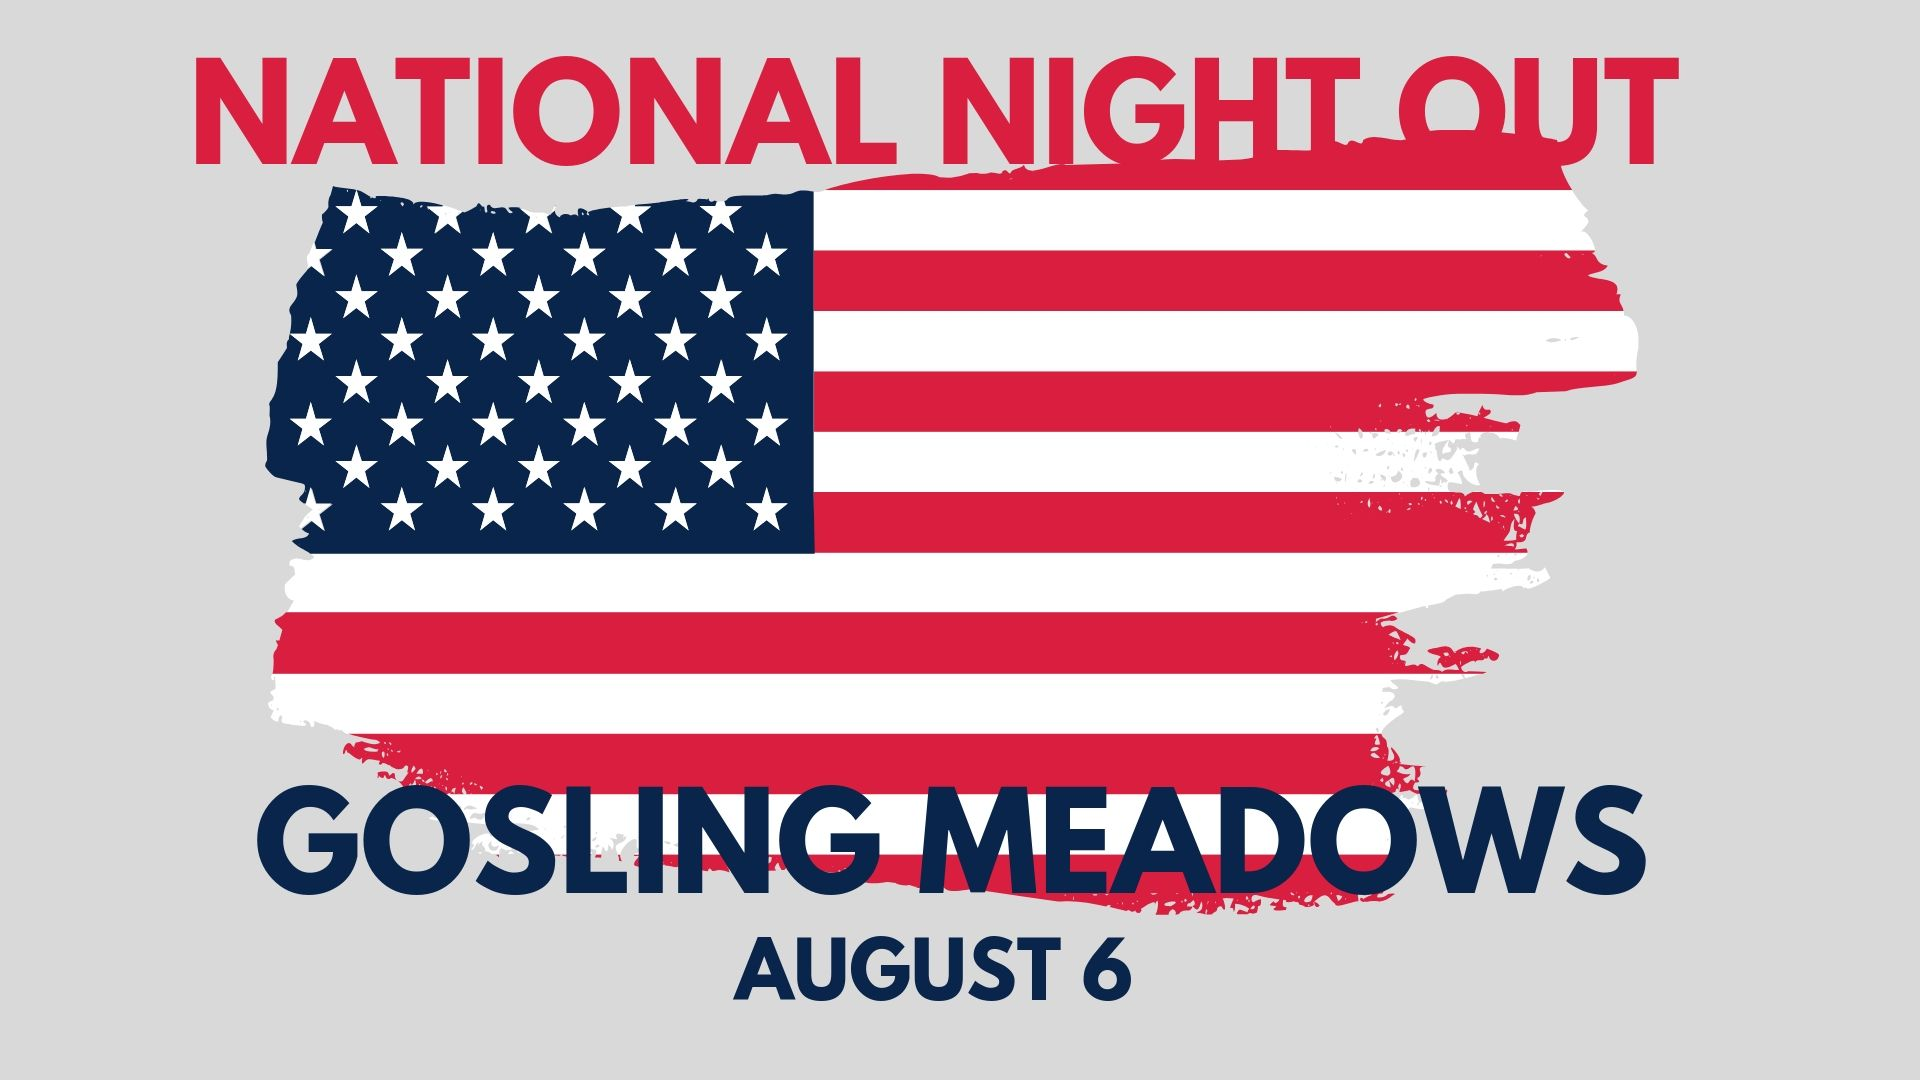 This is another amazing opportunity for our church to serve and shine. the portsmouth police department have asked us to host the gosling meadows national night out for the fifth time! It would be great if everyone who was available could show up to help or even get off work early to join in the fun. we will be sending out an email with more details but please save the date and be there if you can!